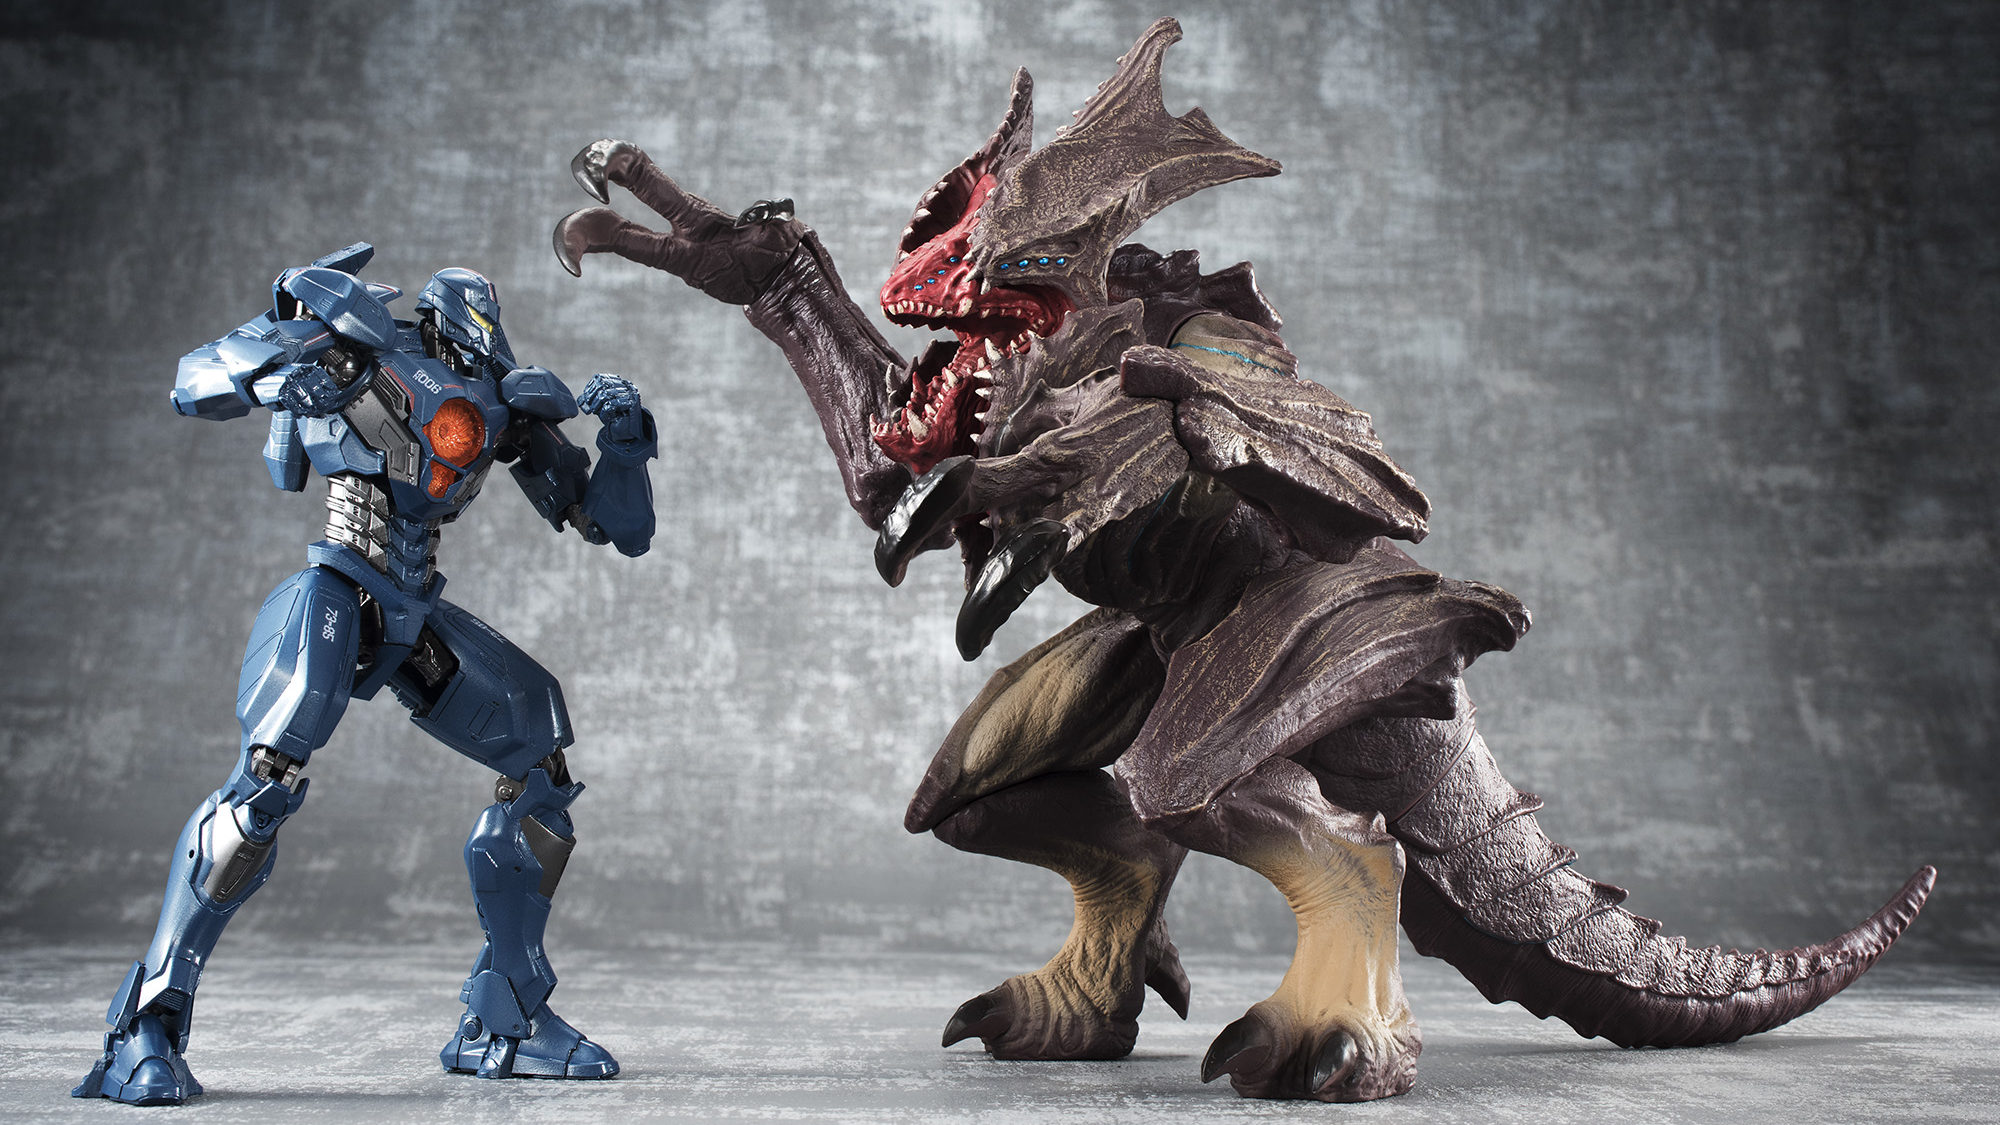 Bluefin Announces New Preorders for Pacific Rim: Uprising Tamashii Nations Figures